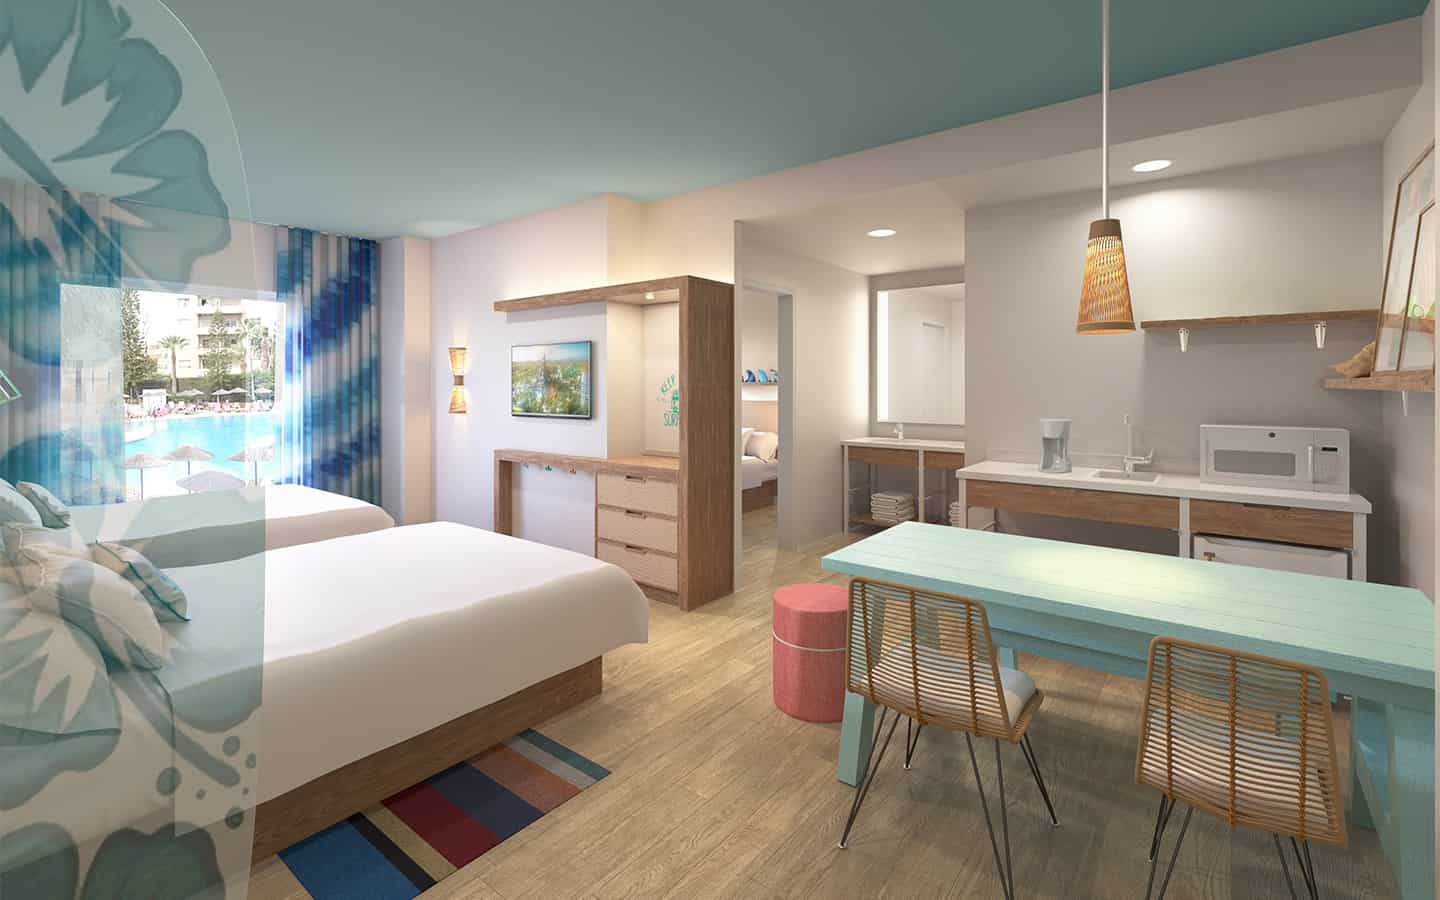 REVEALED: Universal's Endless Summer, the seventh (and eighth) hotel